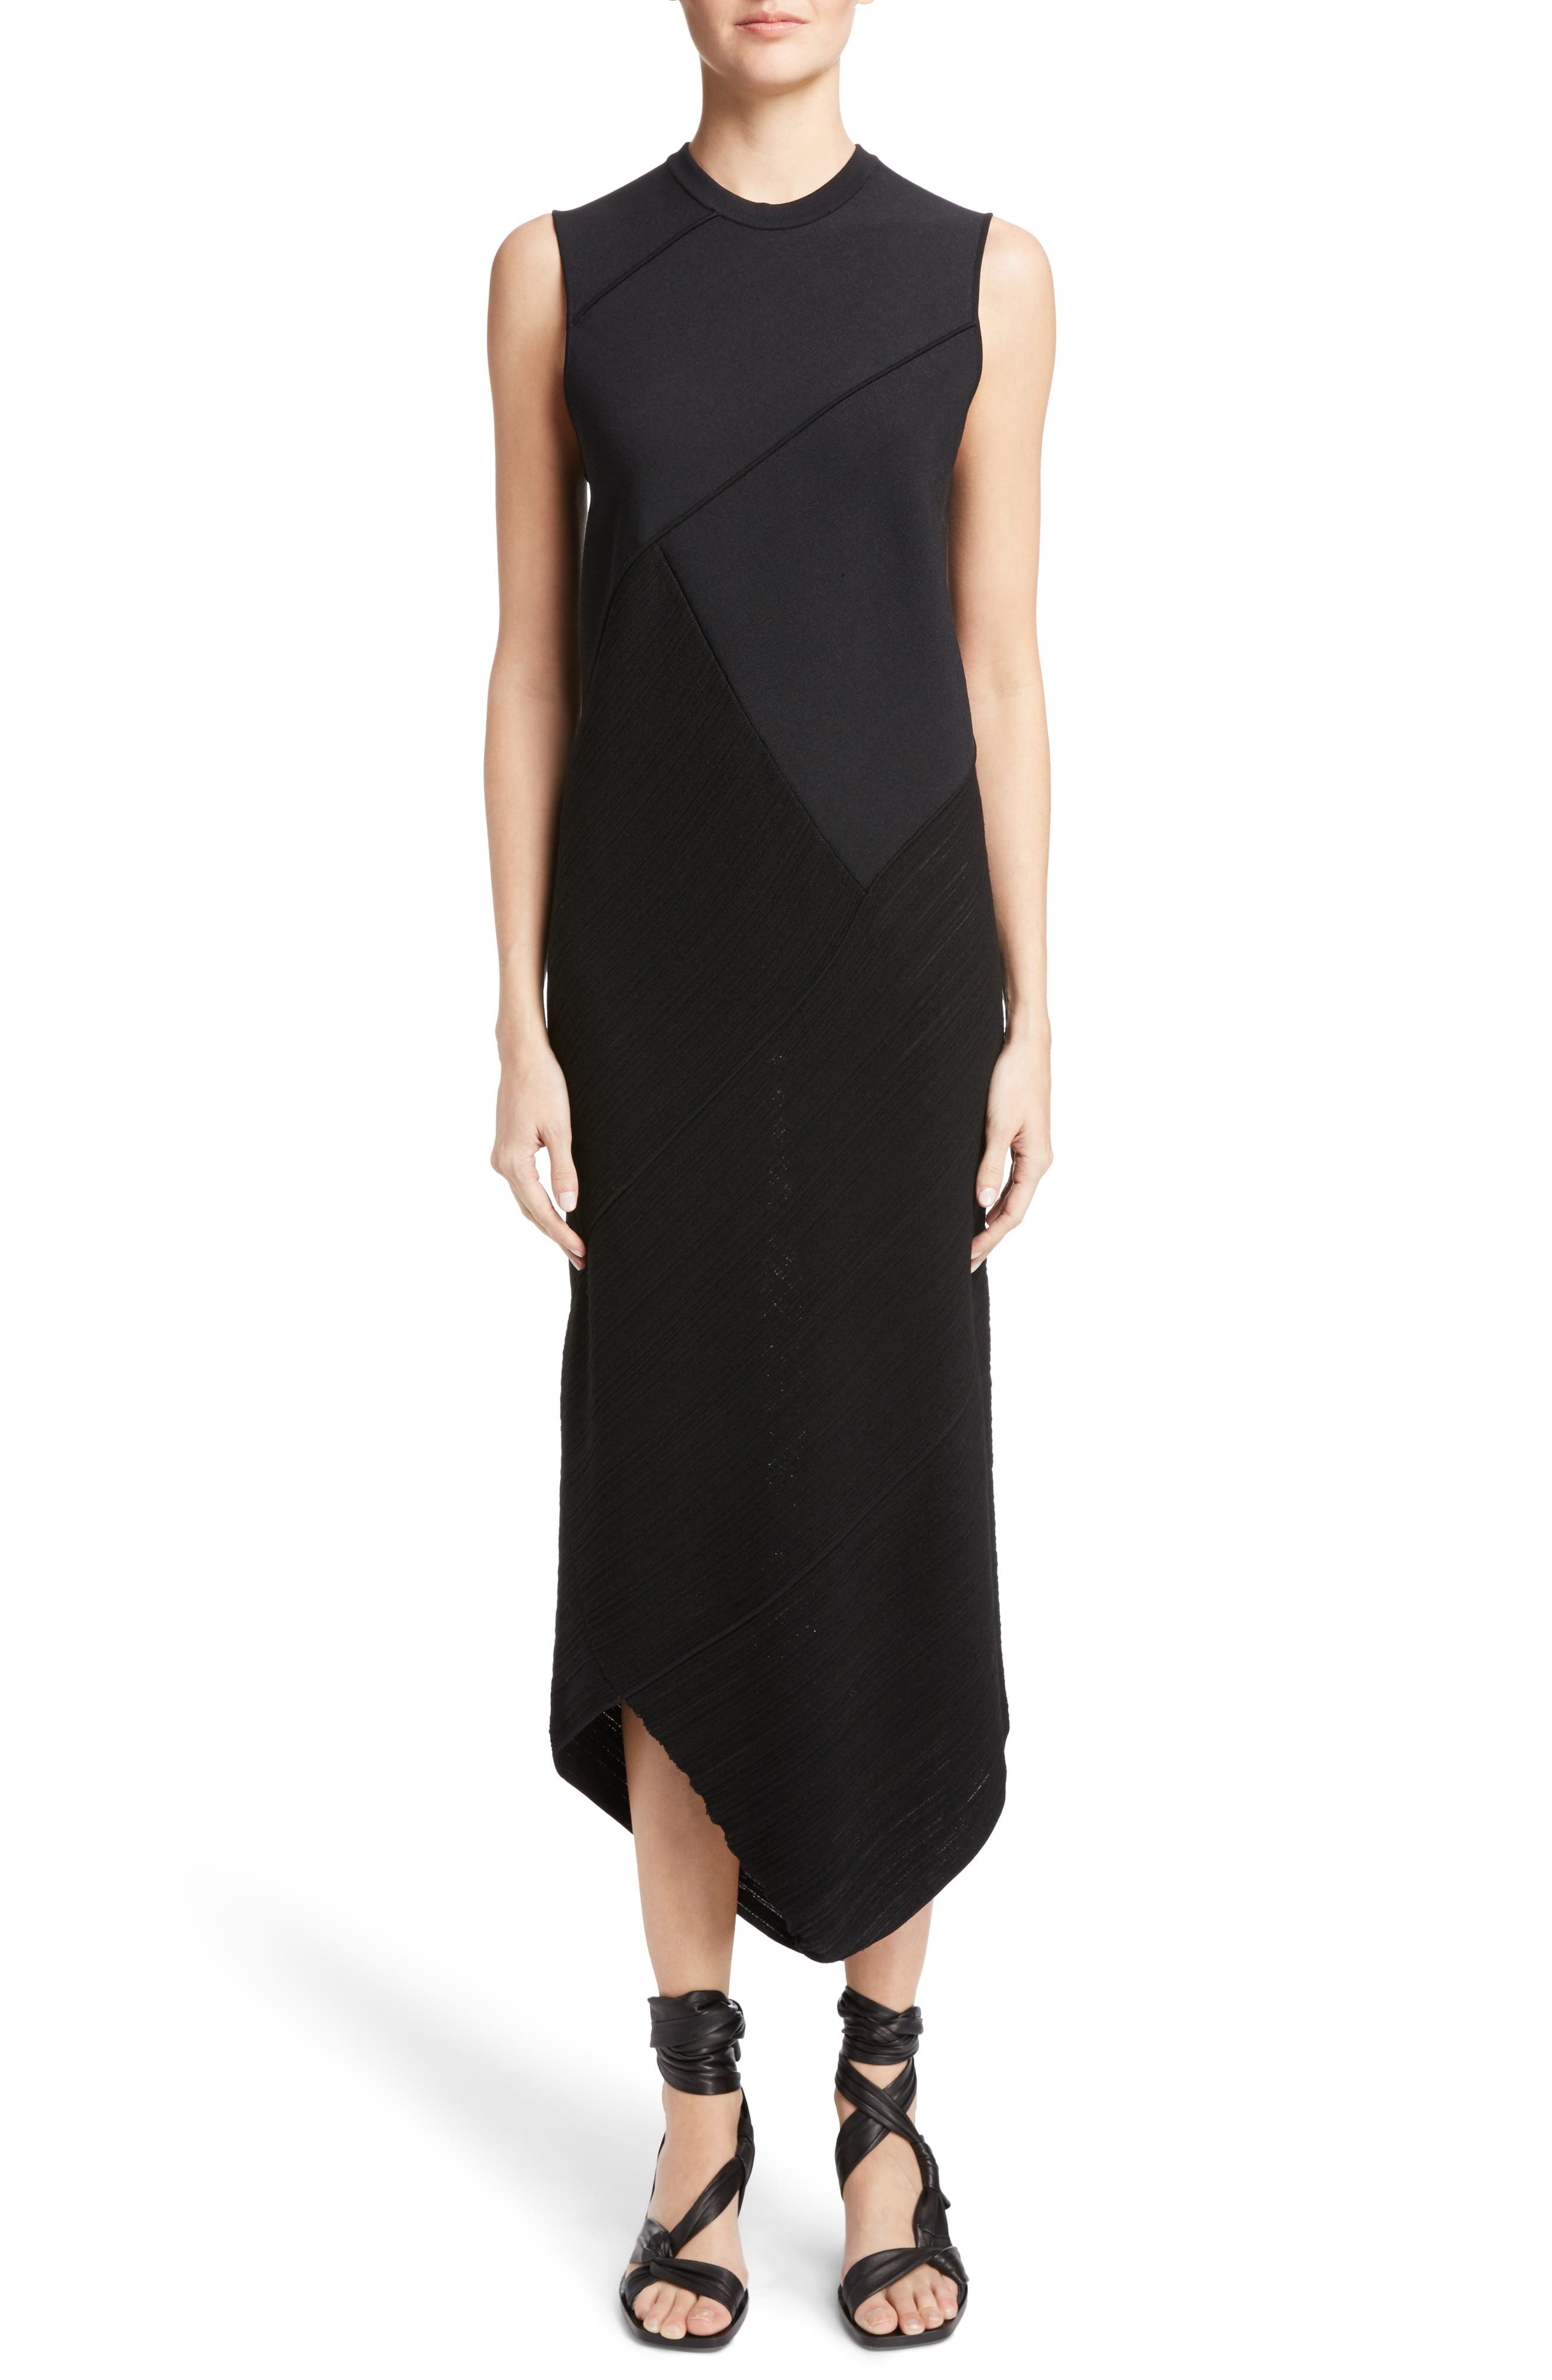 Main Image - Proenza Schouler Asymmetrical Spiral Knit Dress